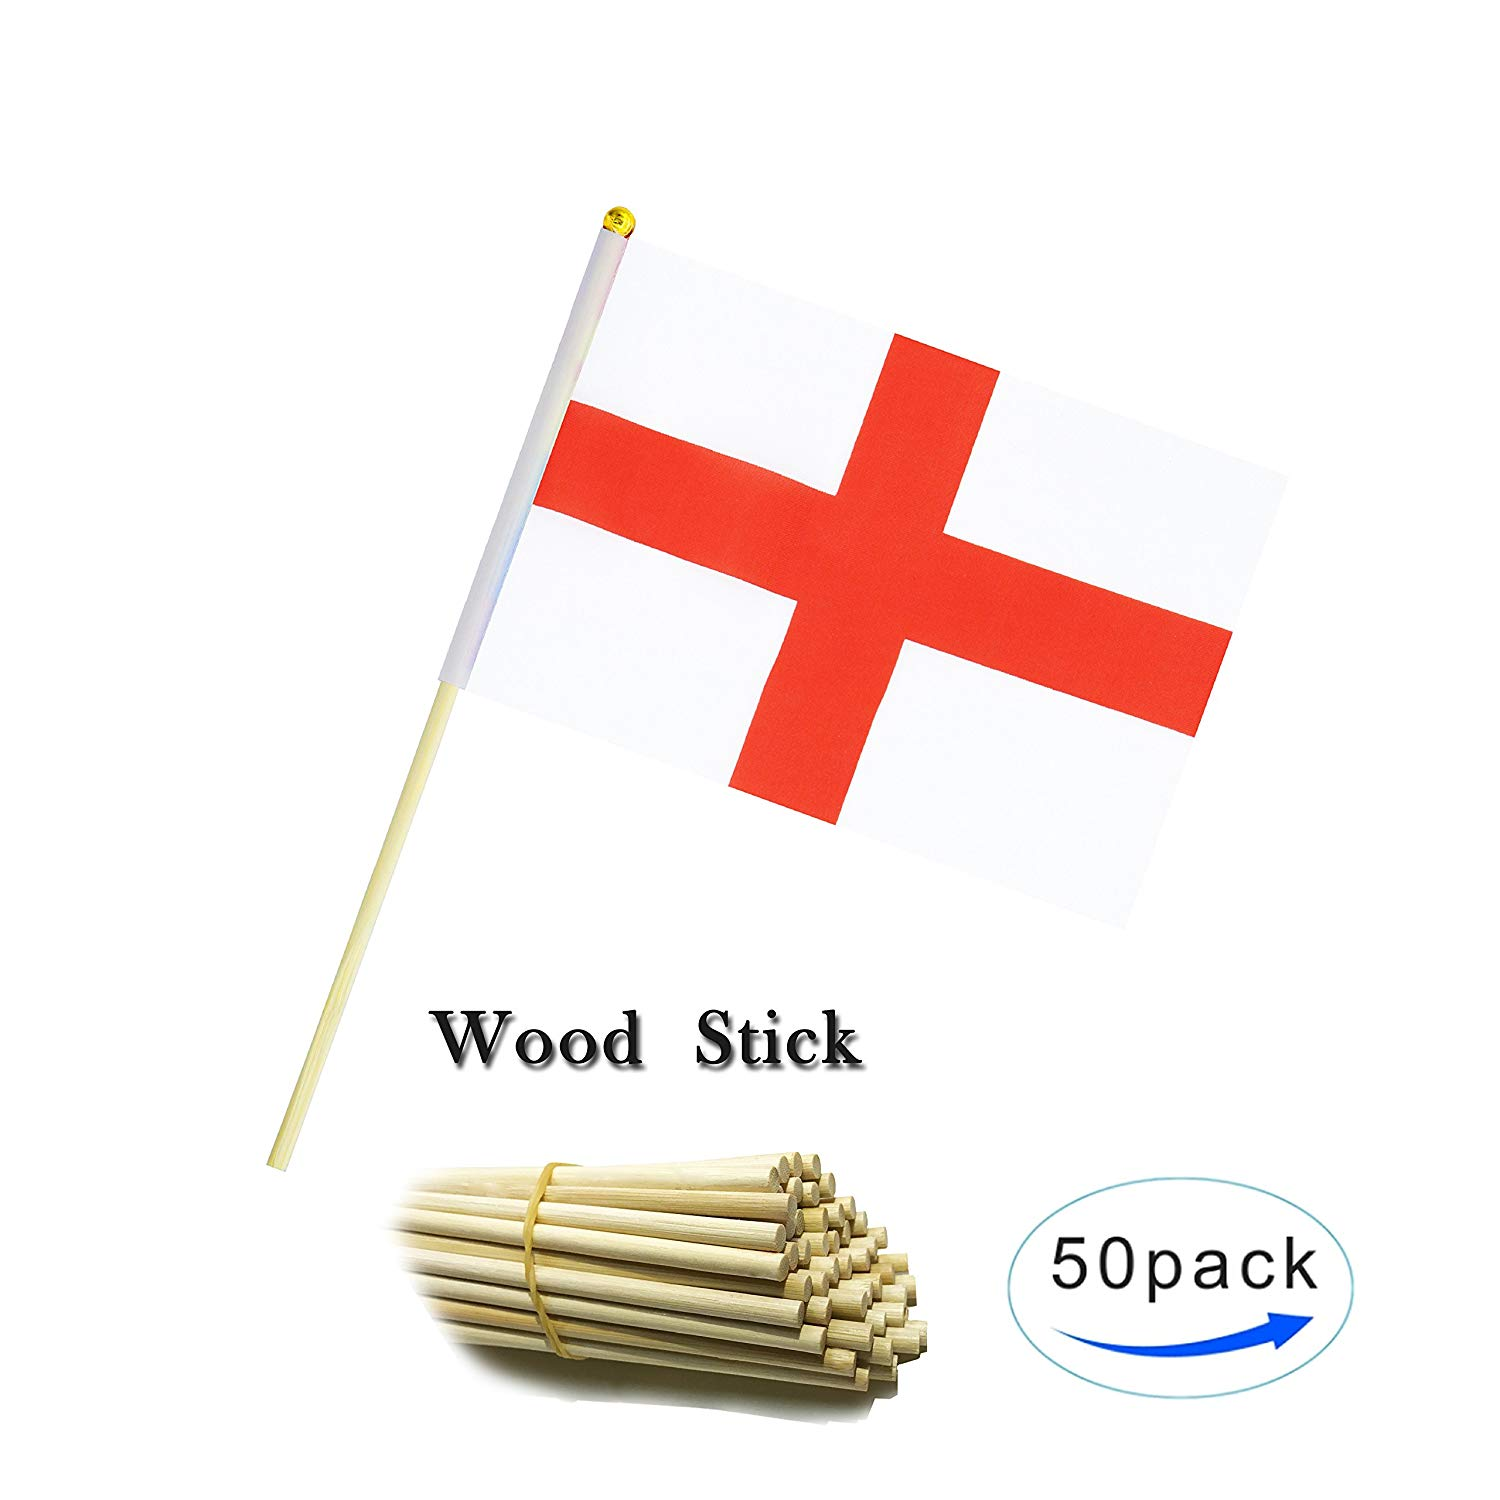 Wood Hand Held England Flag English people Flag Stick Flag Small Mini Flag 50 Pack Round Top National Country Flags,Party Decorations Supplies For Parades,World Cup,Sports Events, Celebration